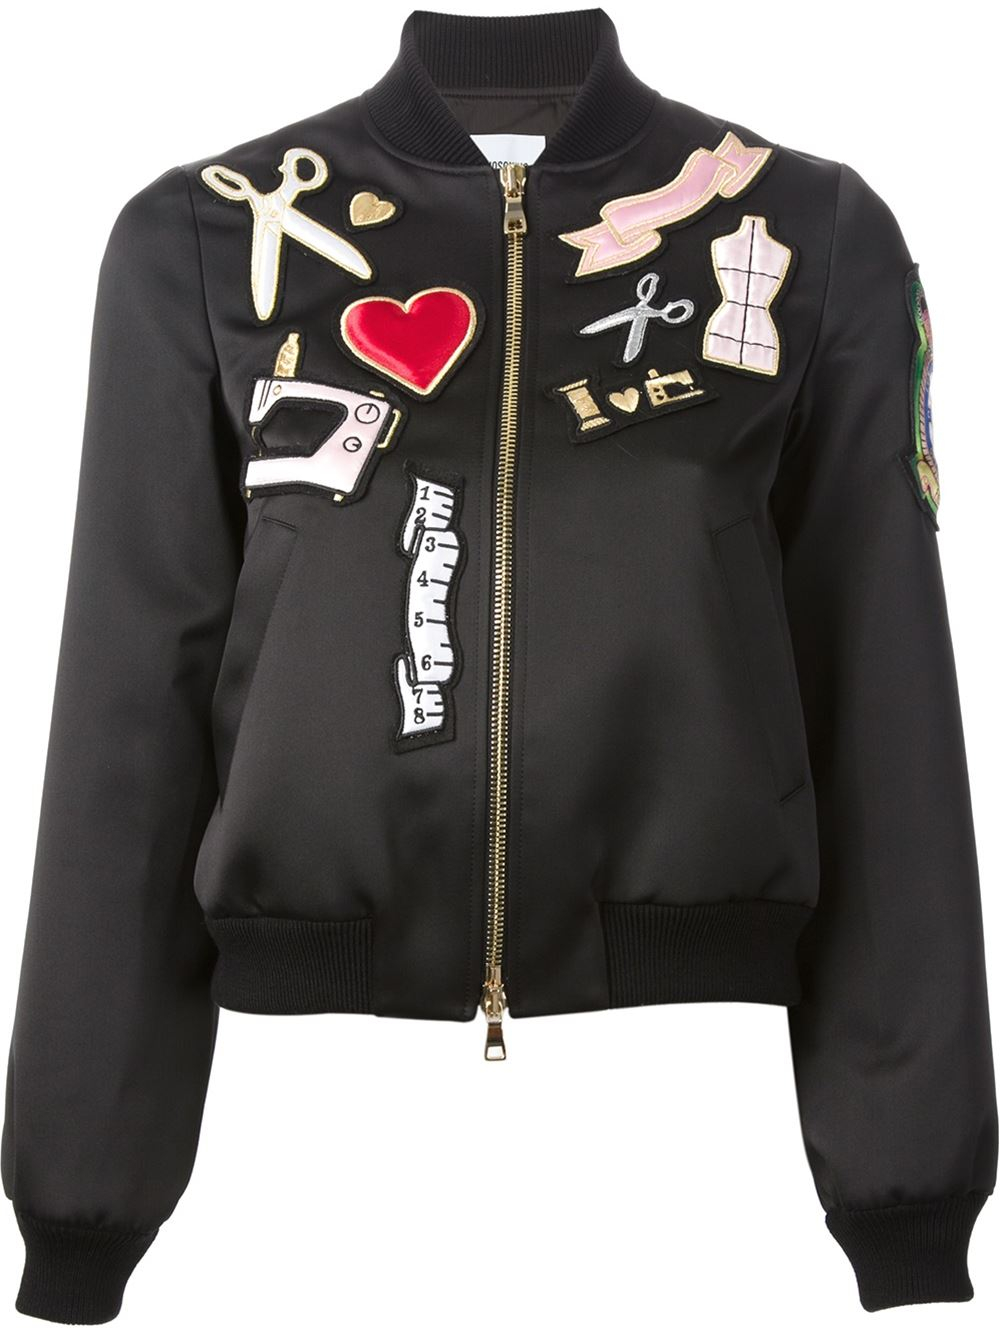 Lyst - Boutique Moschino Patch Bomber Jacket In Black